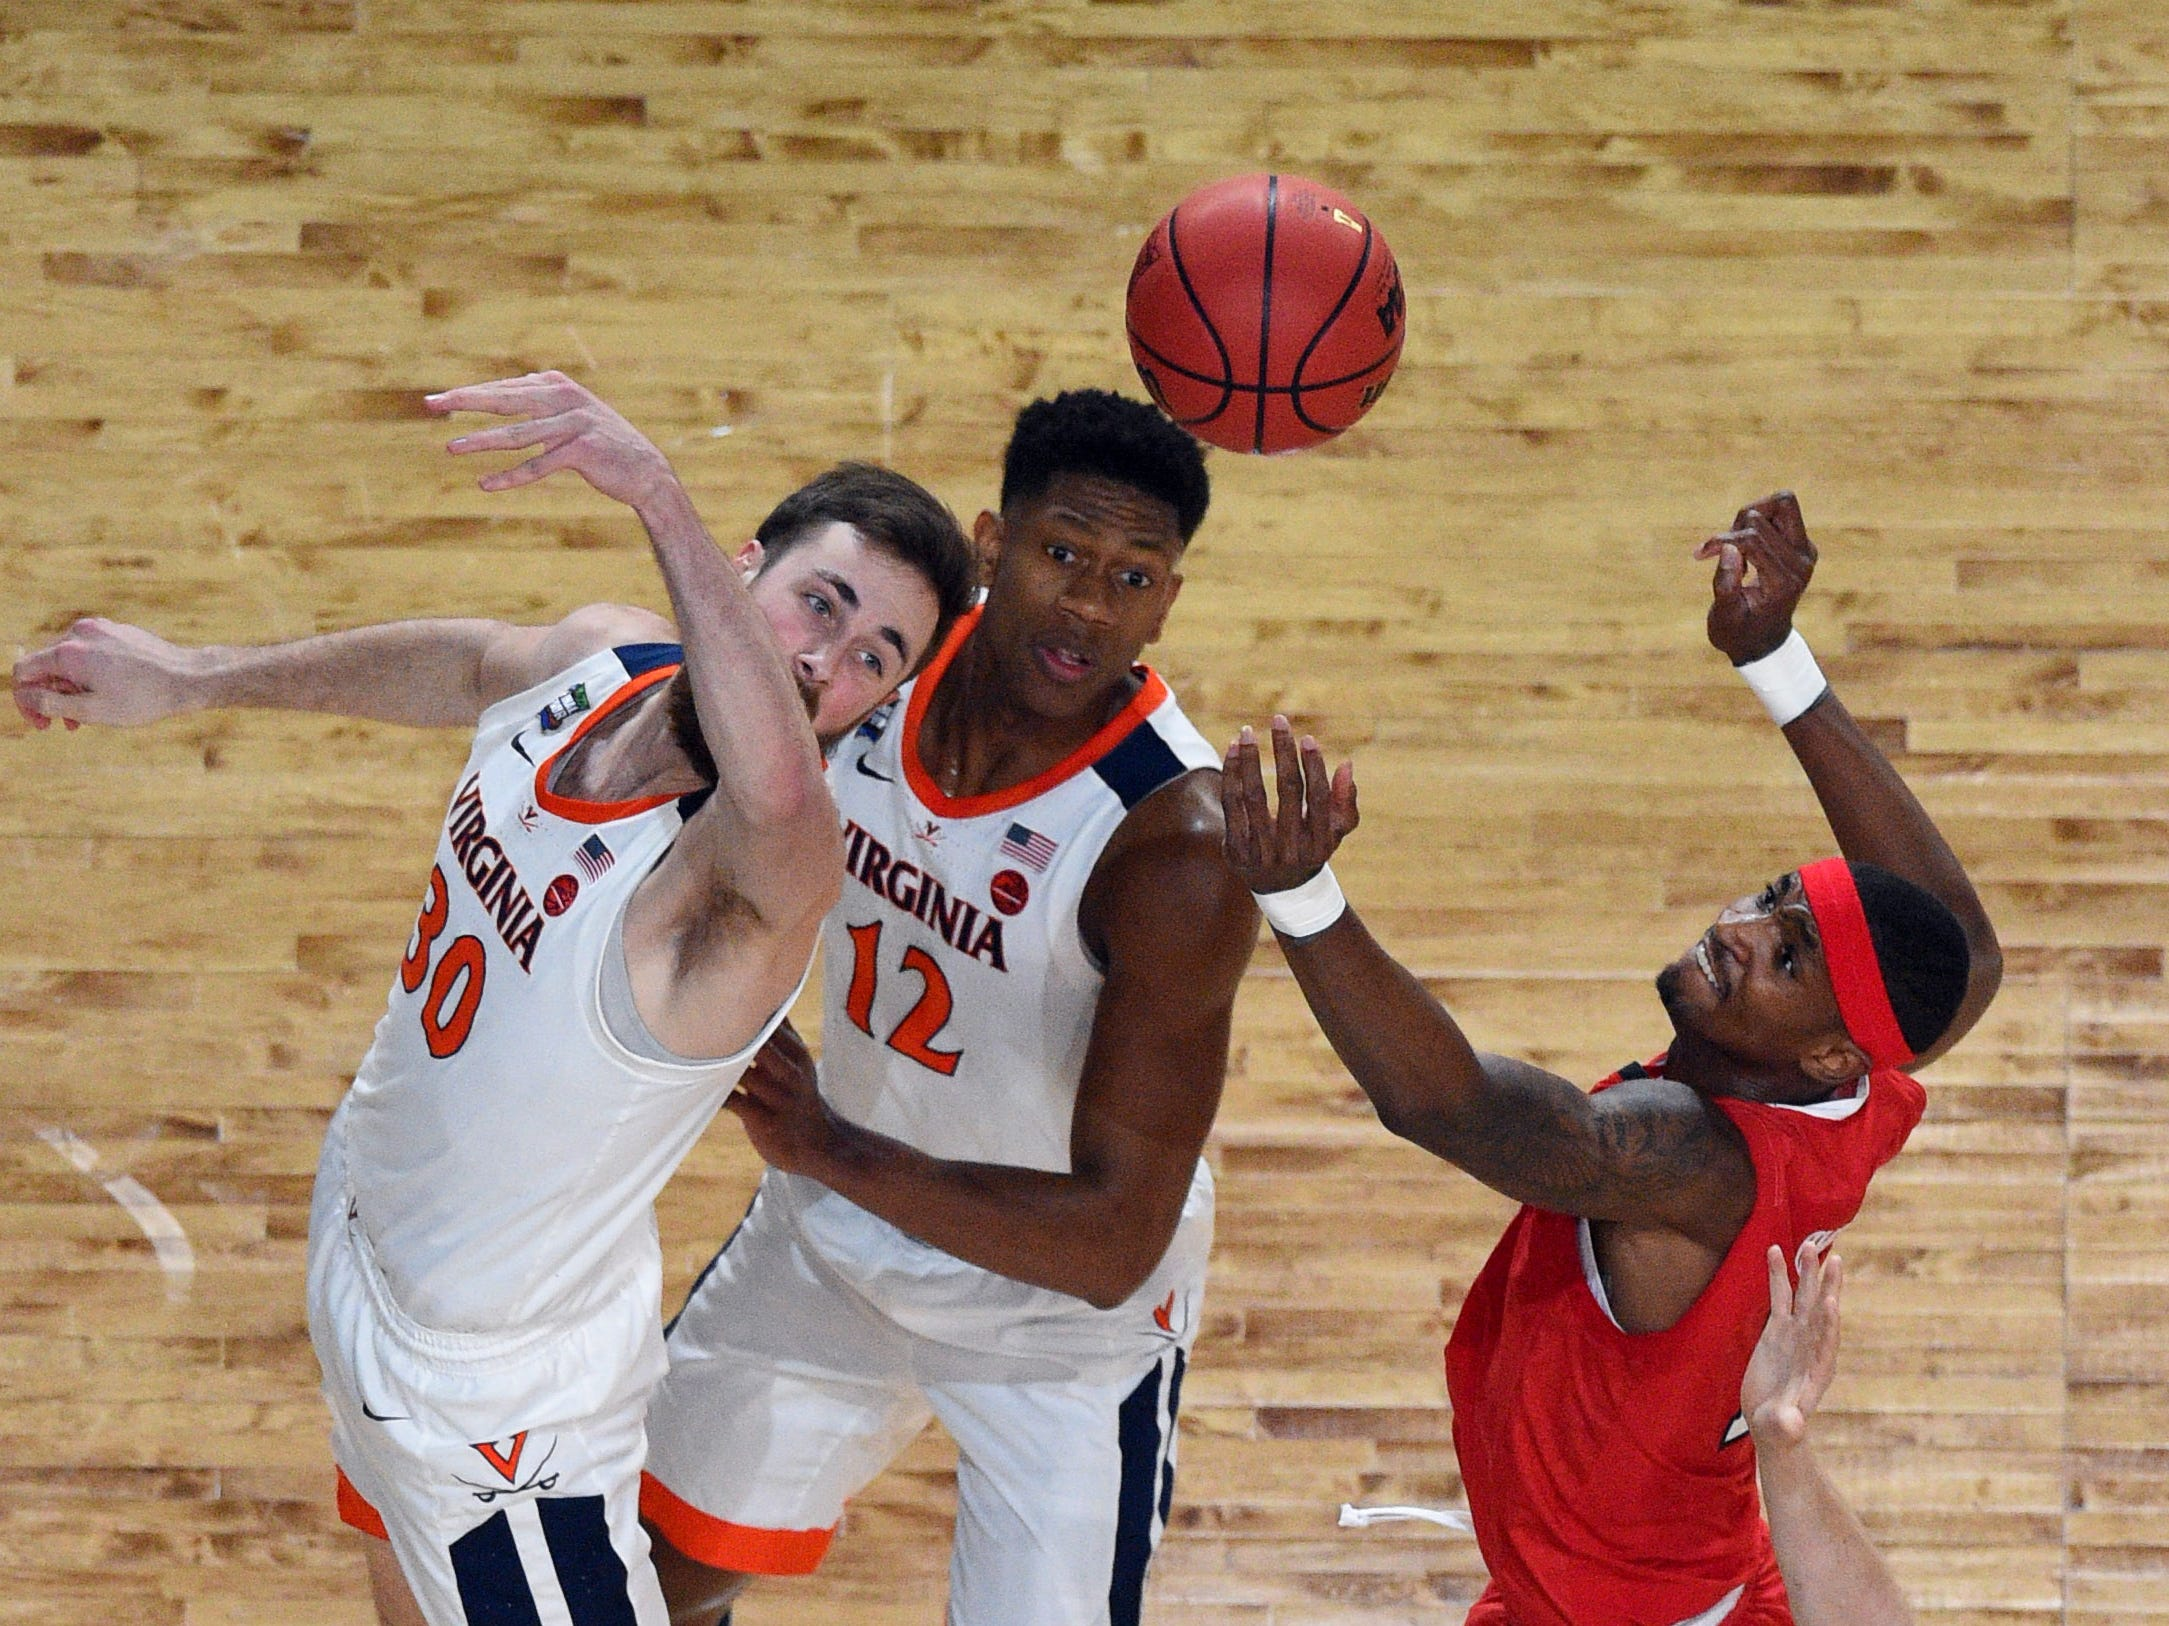 Apr 8, 2019; Minneapolis, MN, USA; Texas Tech Red Raiders forward Tariq Owens (11) reaches for a rebound against Virginia Cavaliers forward Jay Huff (30) and guard De'Andre Hunter (12) in the first half in the championship game of the 2019 men's Final Four at US Bank Stadium. Mandatory Credit: Robert Deutsch-USA TODAY Sports